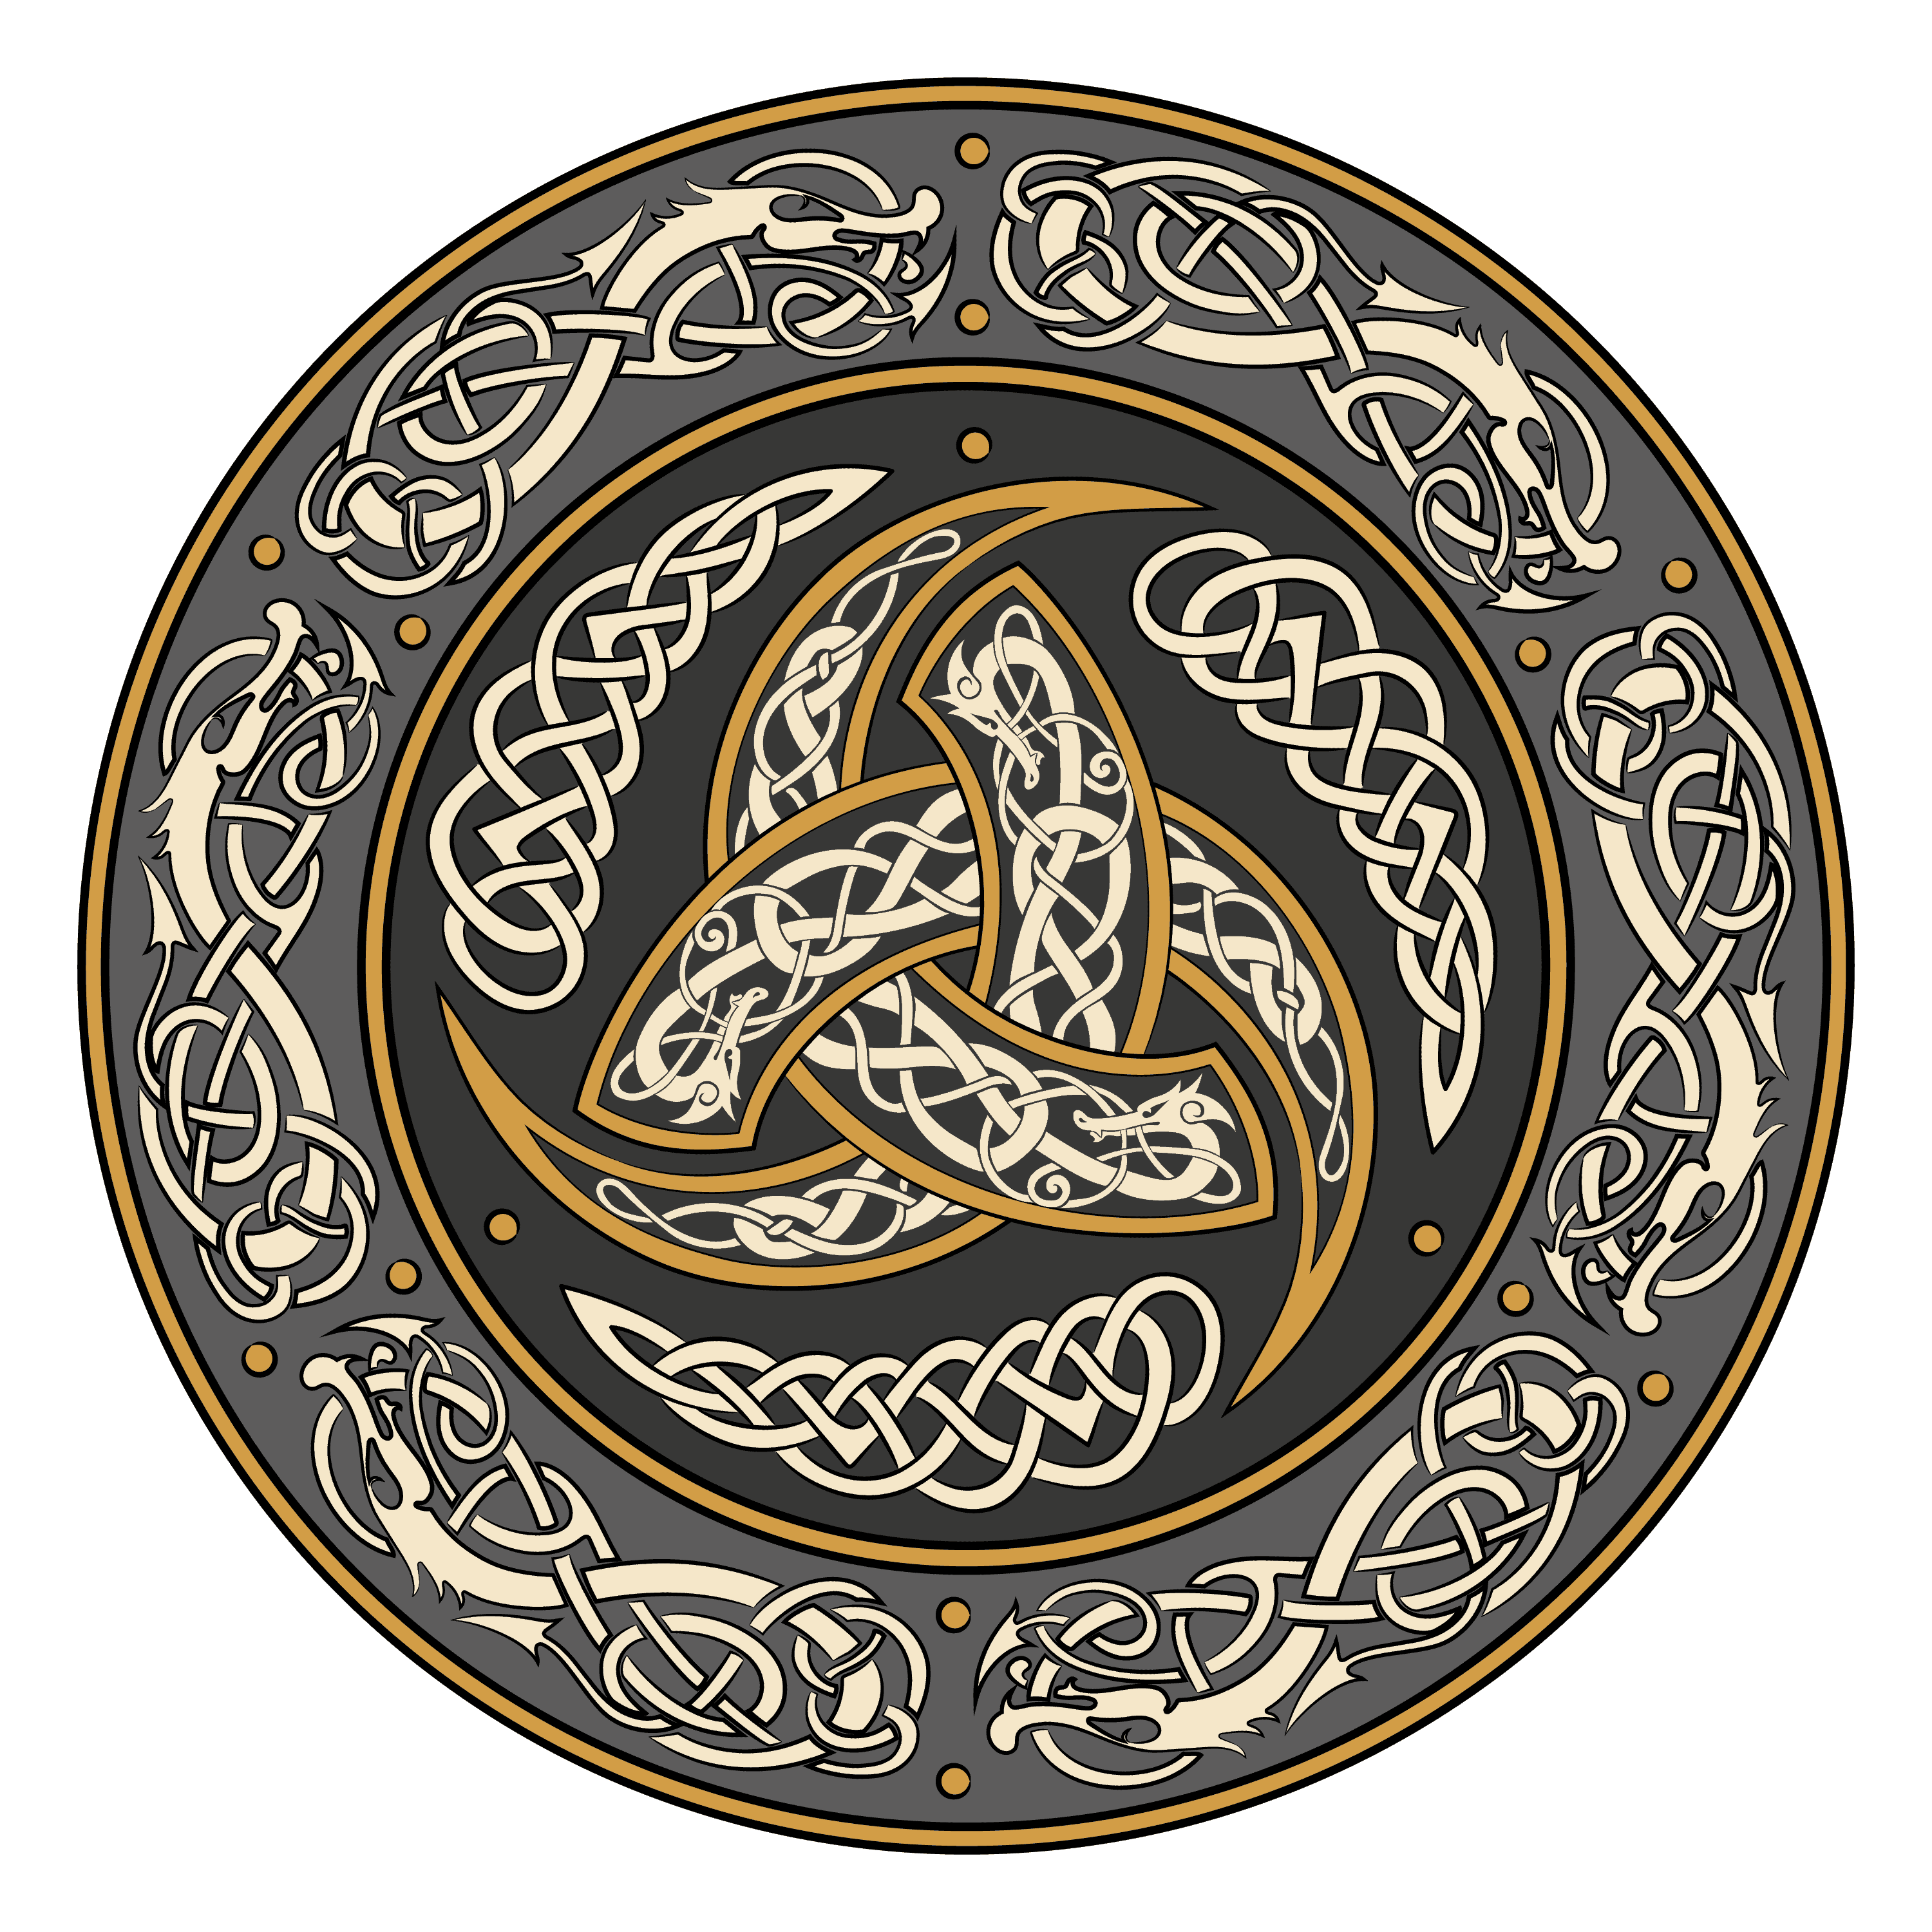 Triple Horn of Odin as a Pagan Symbol